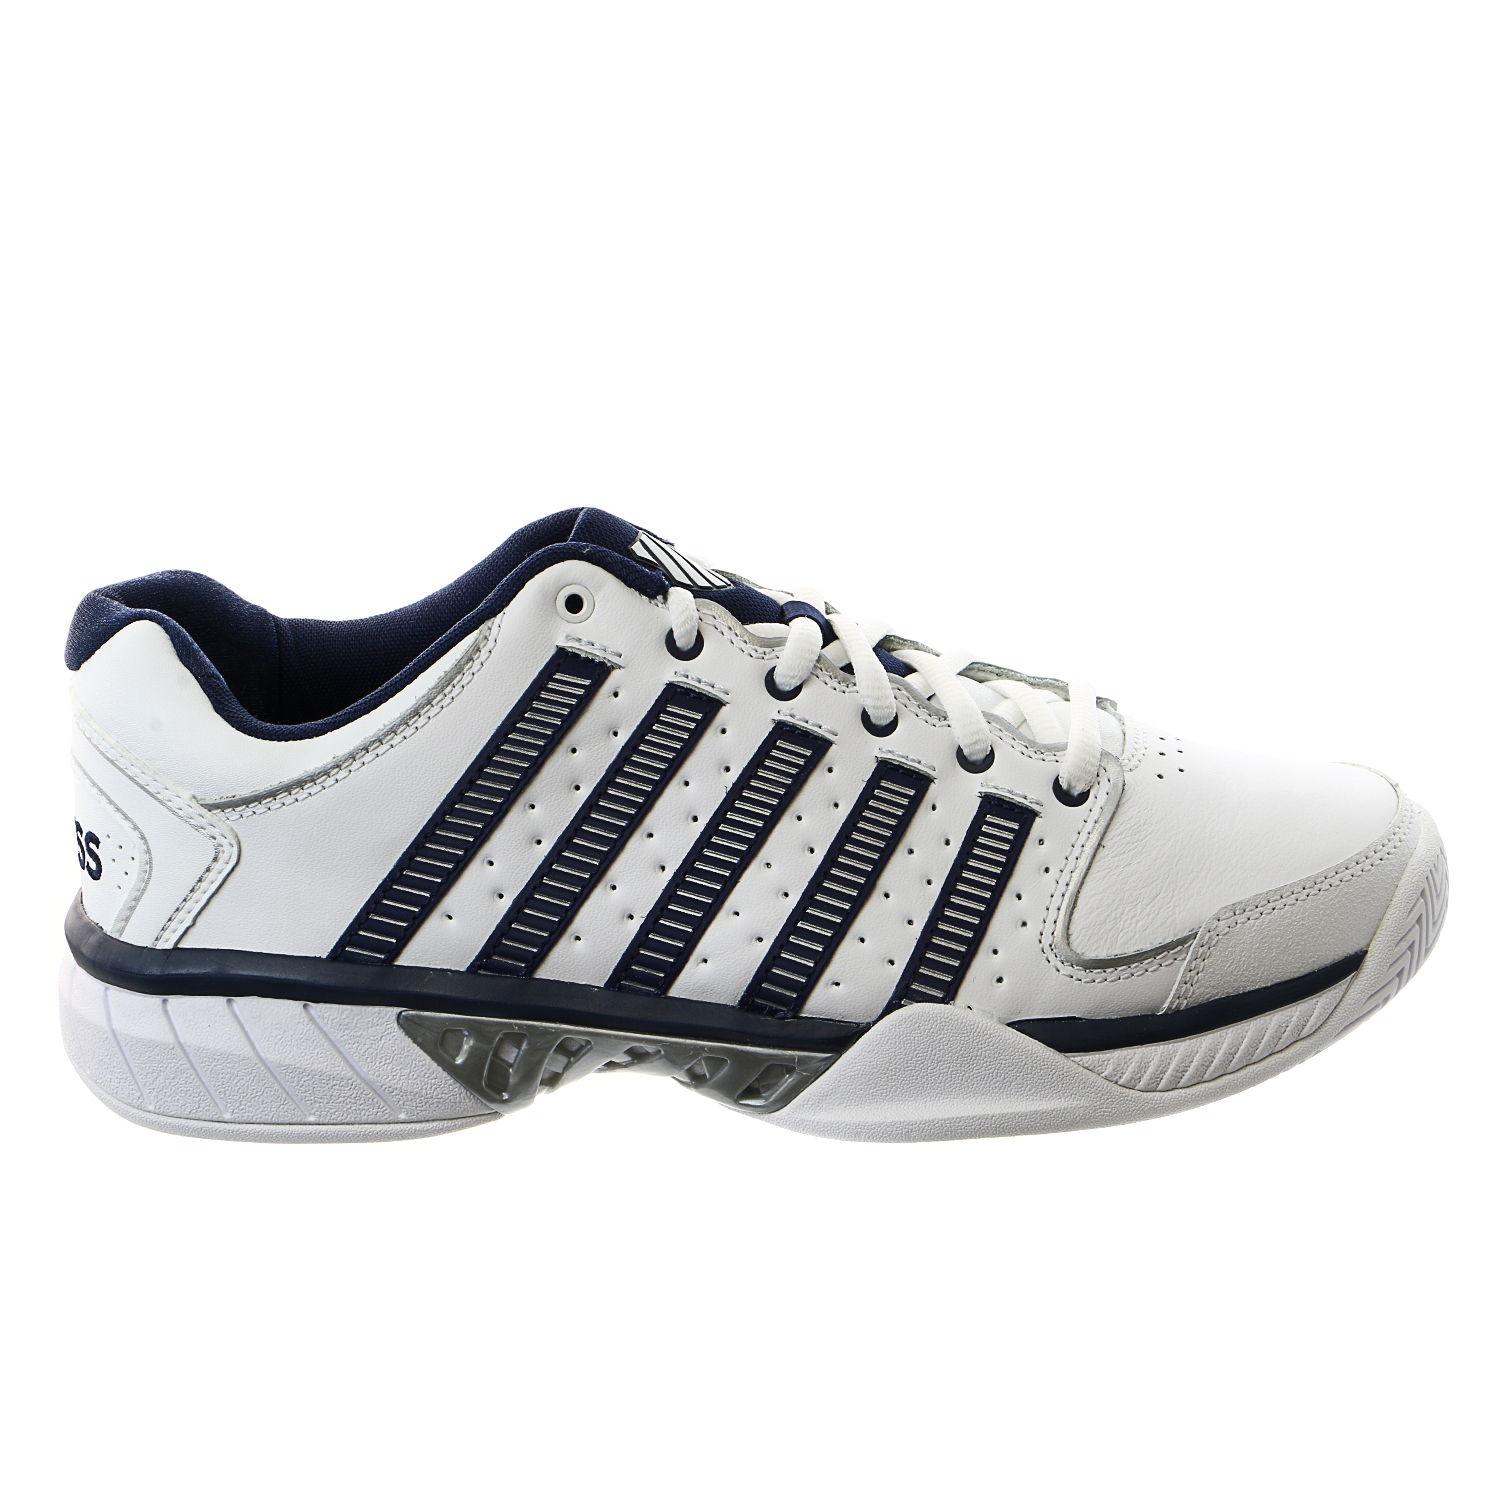 K-Swiss HyperCourt Express Tennis Sneaker Shoe Mens by K-Swiss